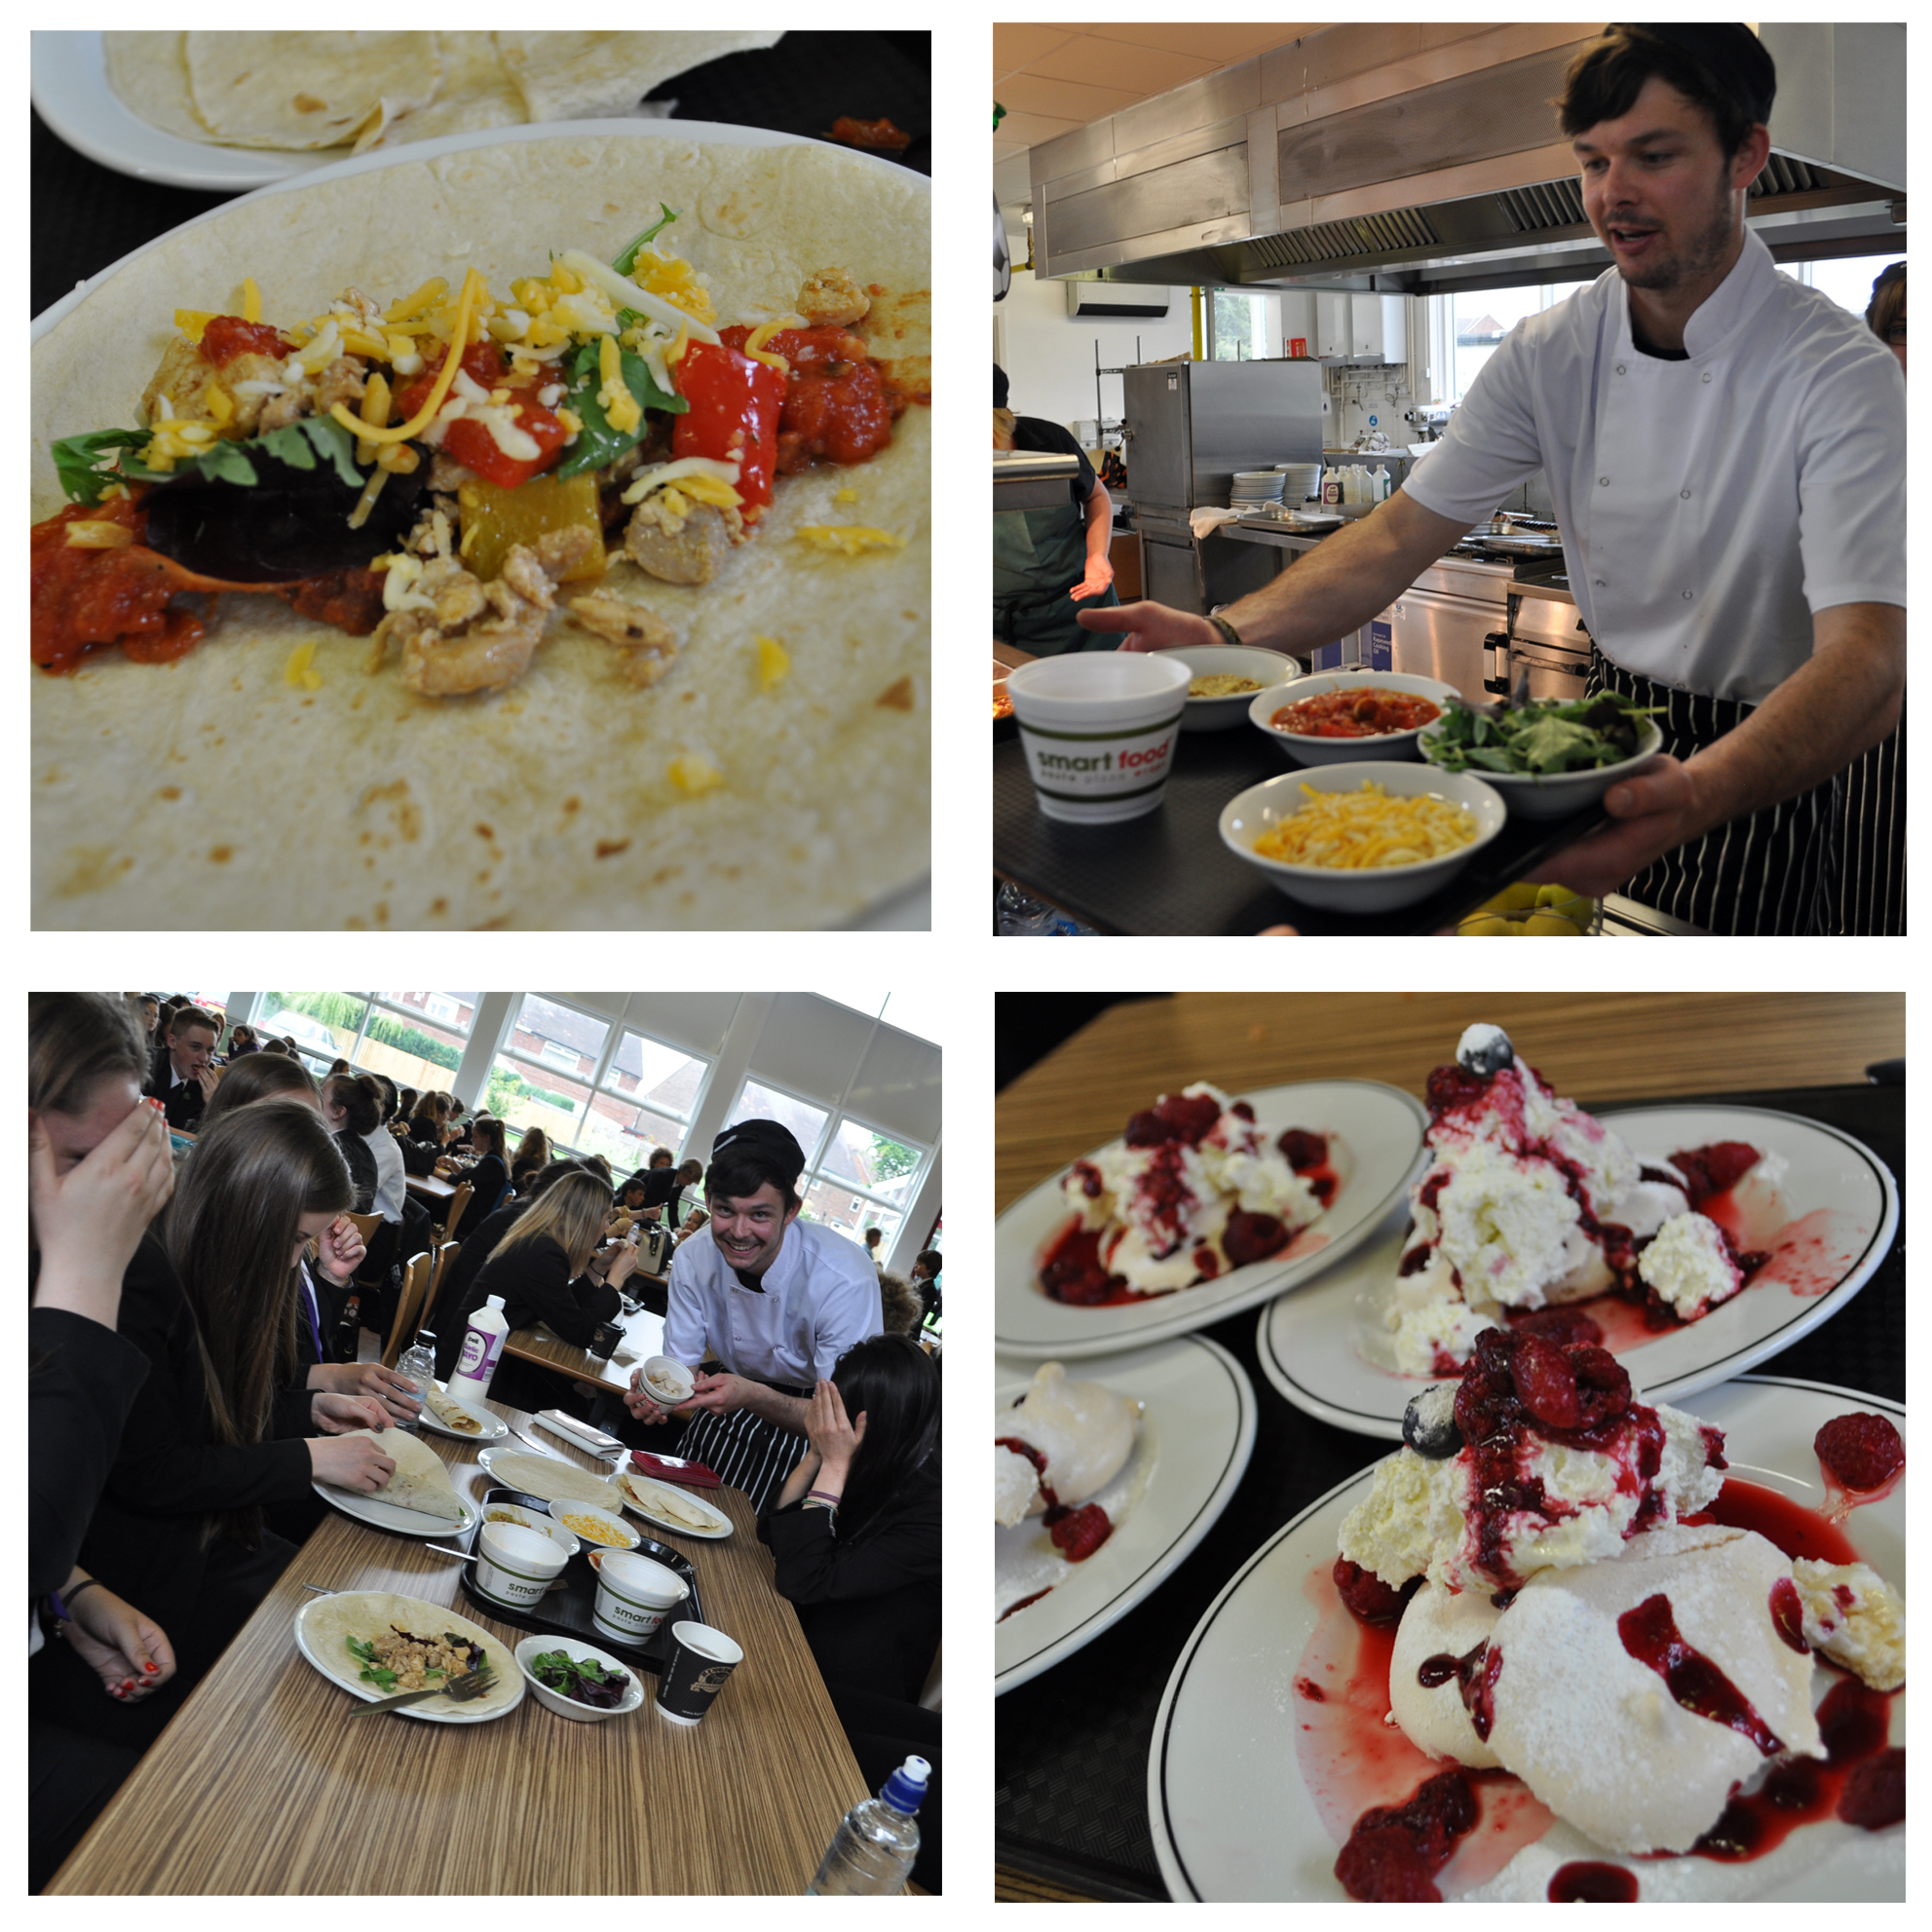 Mr Prytherch's team came up with a Mexican sharing platter on Friday.